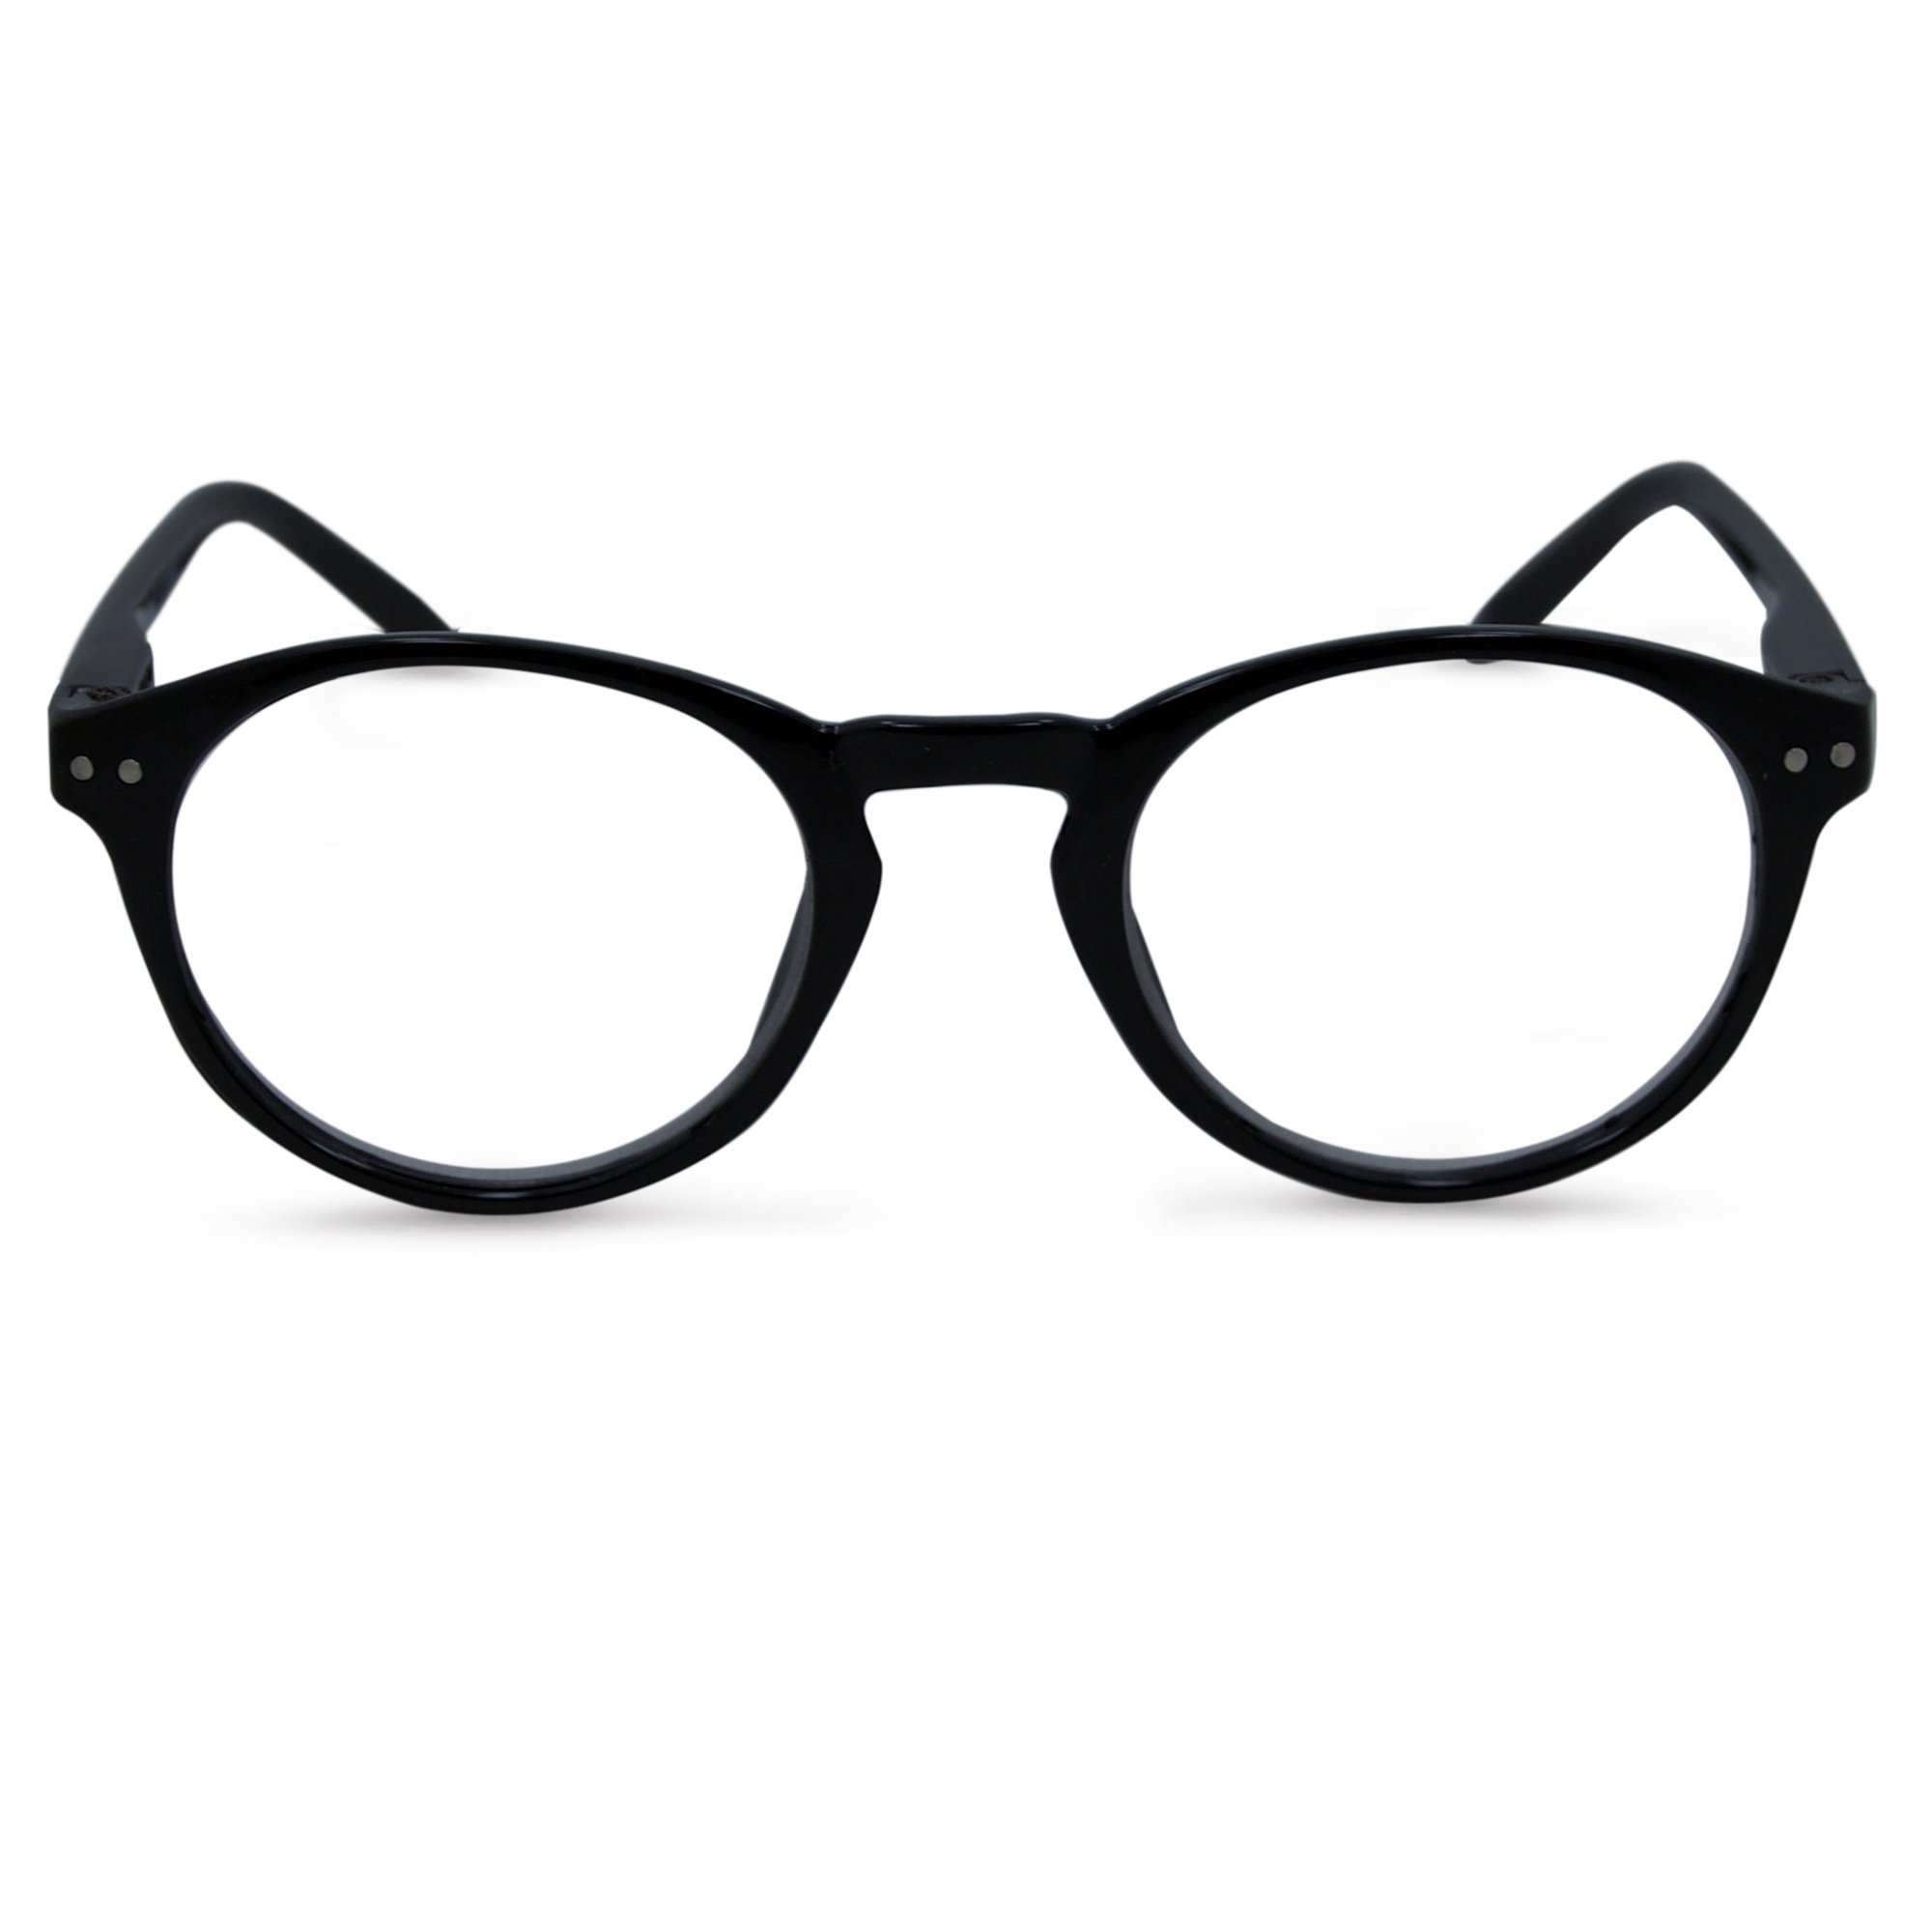 In Style Eyes Optic Vision Progressive BiFocal Glasses/Black 2.50 by In Style Eyes (Image #2)